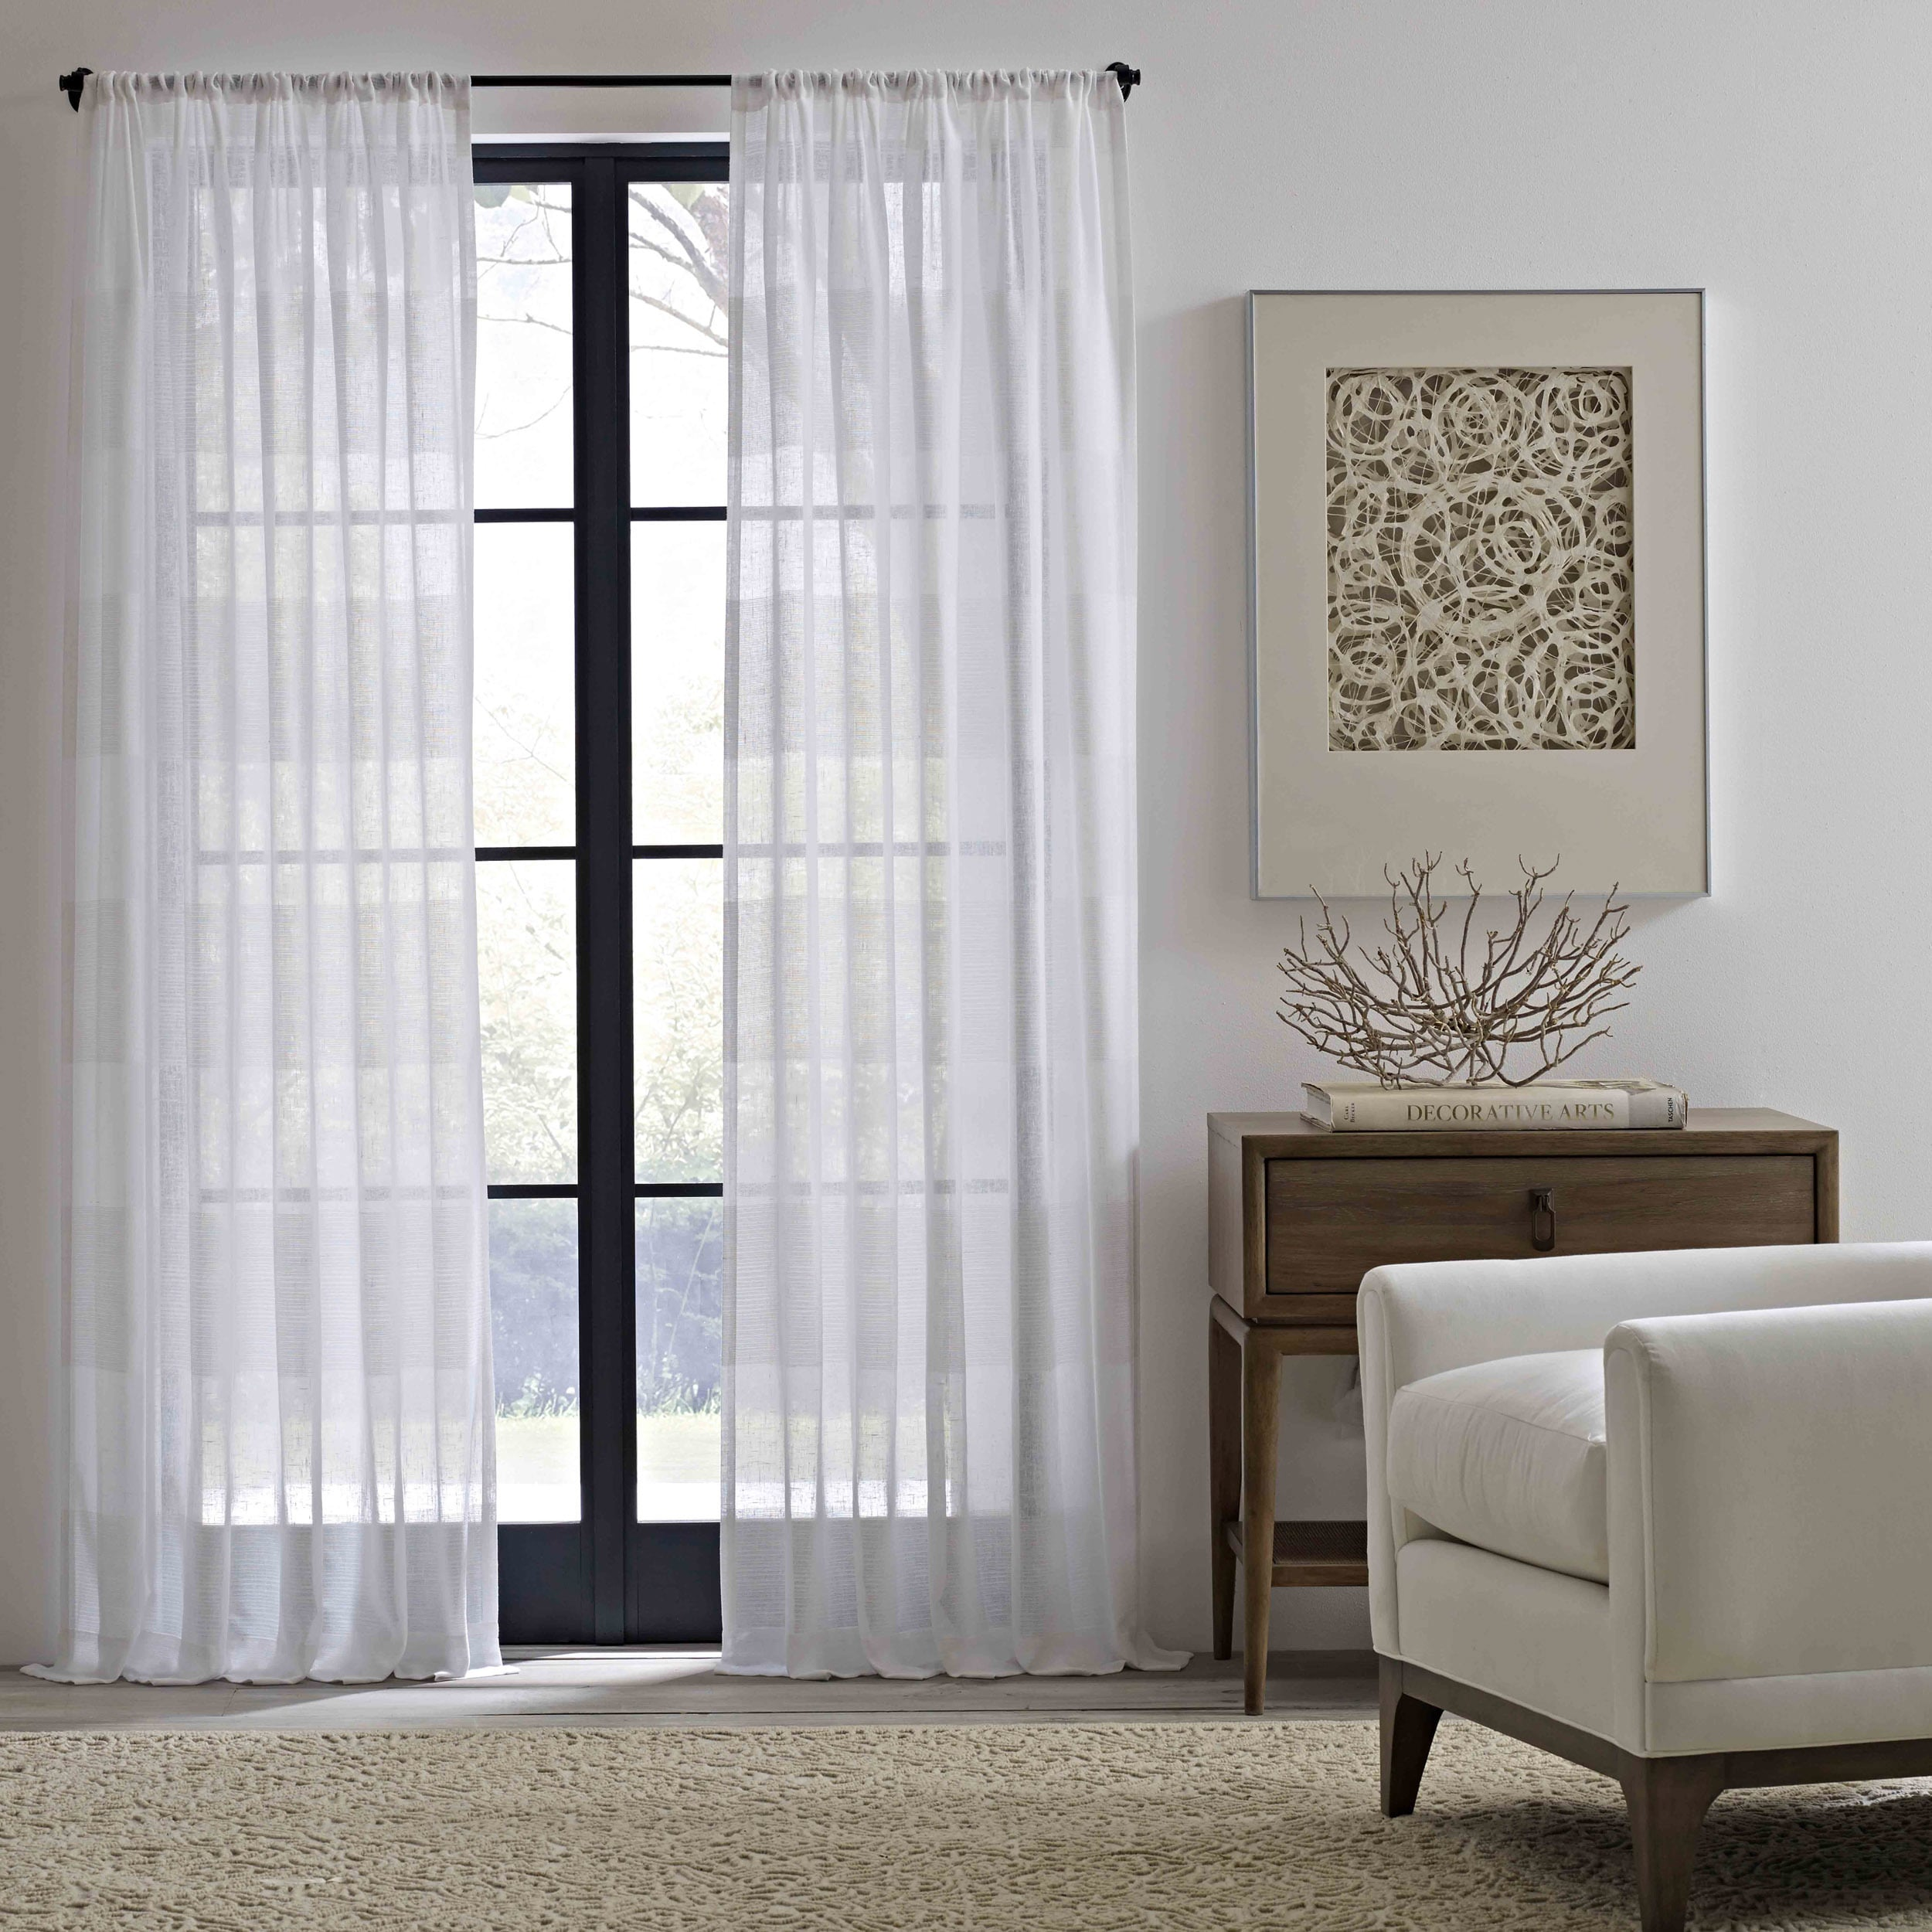 product orders home hall free garden shipping toile floral window curtains over on overstock waverly clifton drapes curtain